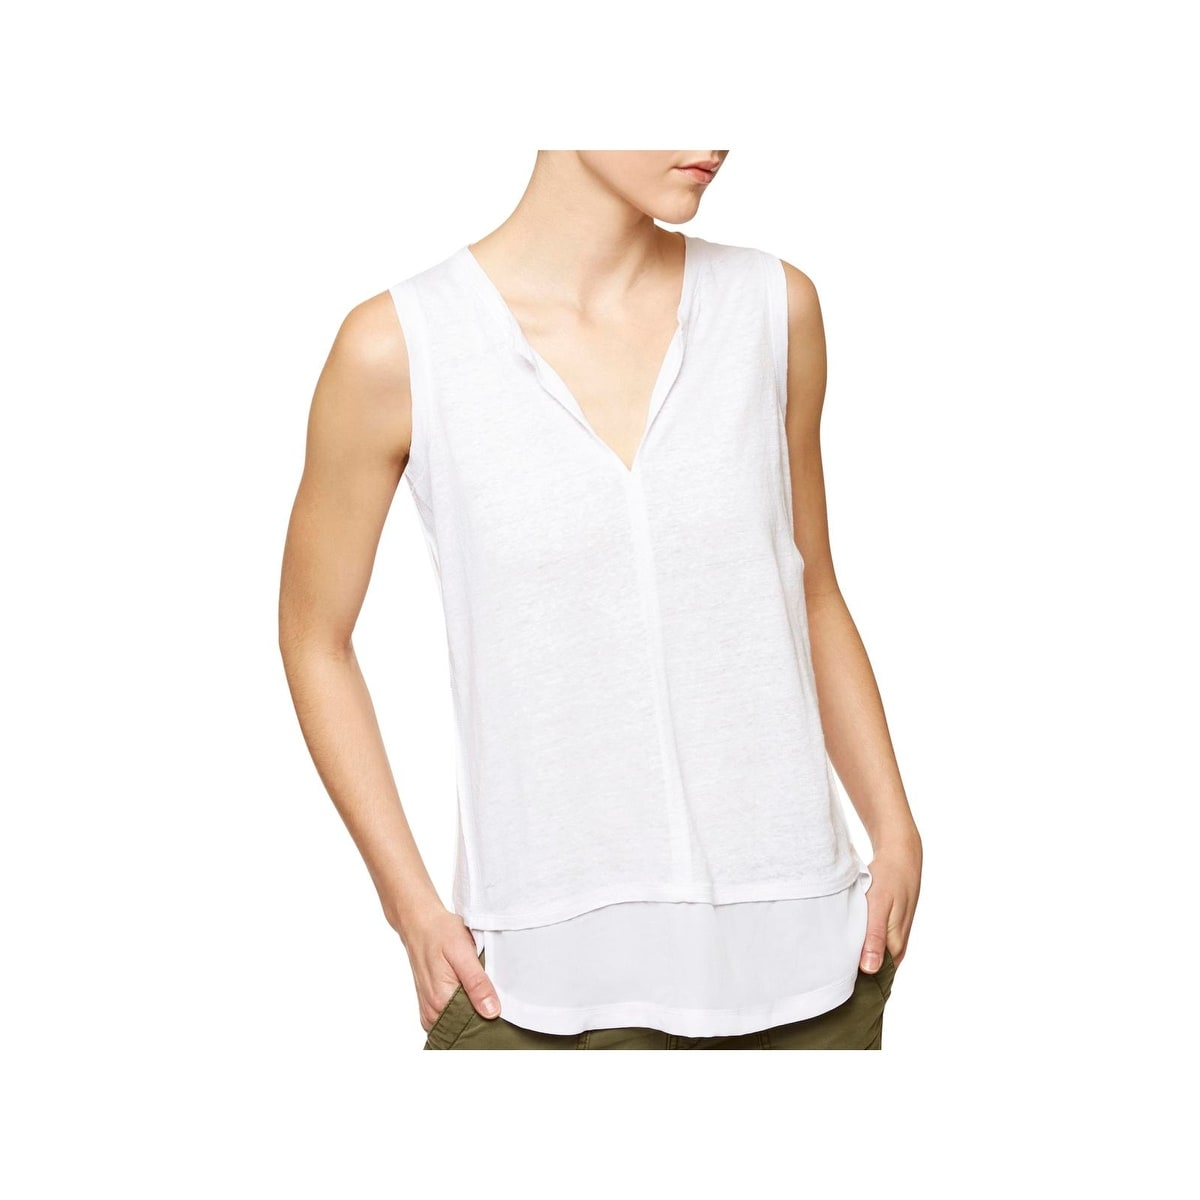 dd82a7a3b2db84 Sanctuary Tops | Find Great Women's Clothing Deals Shopping at Overstock